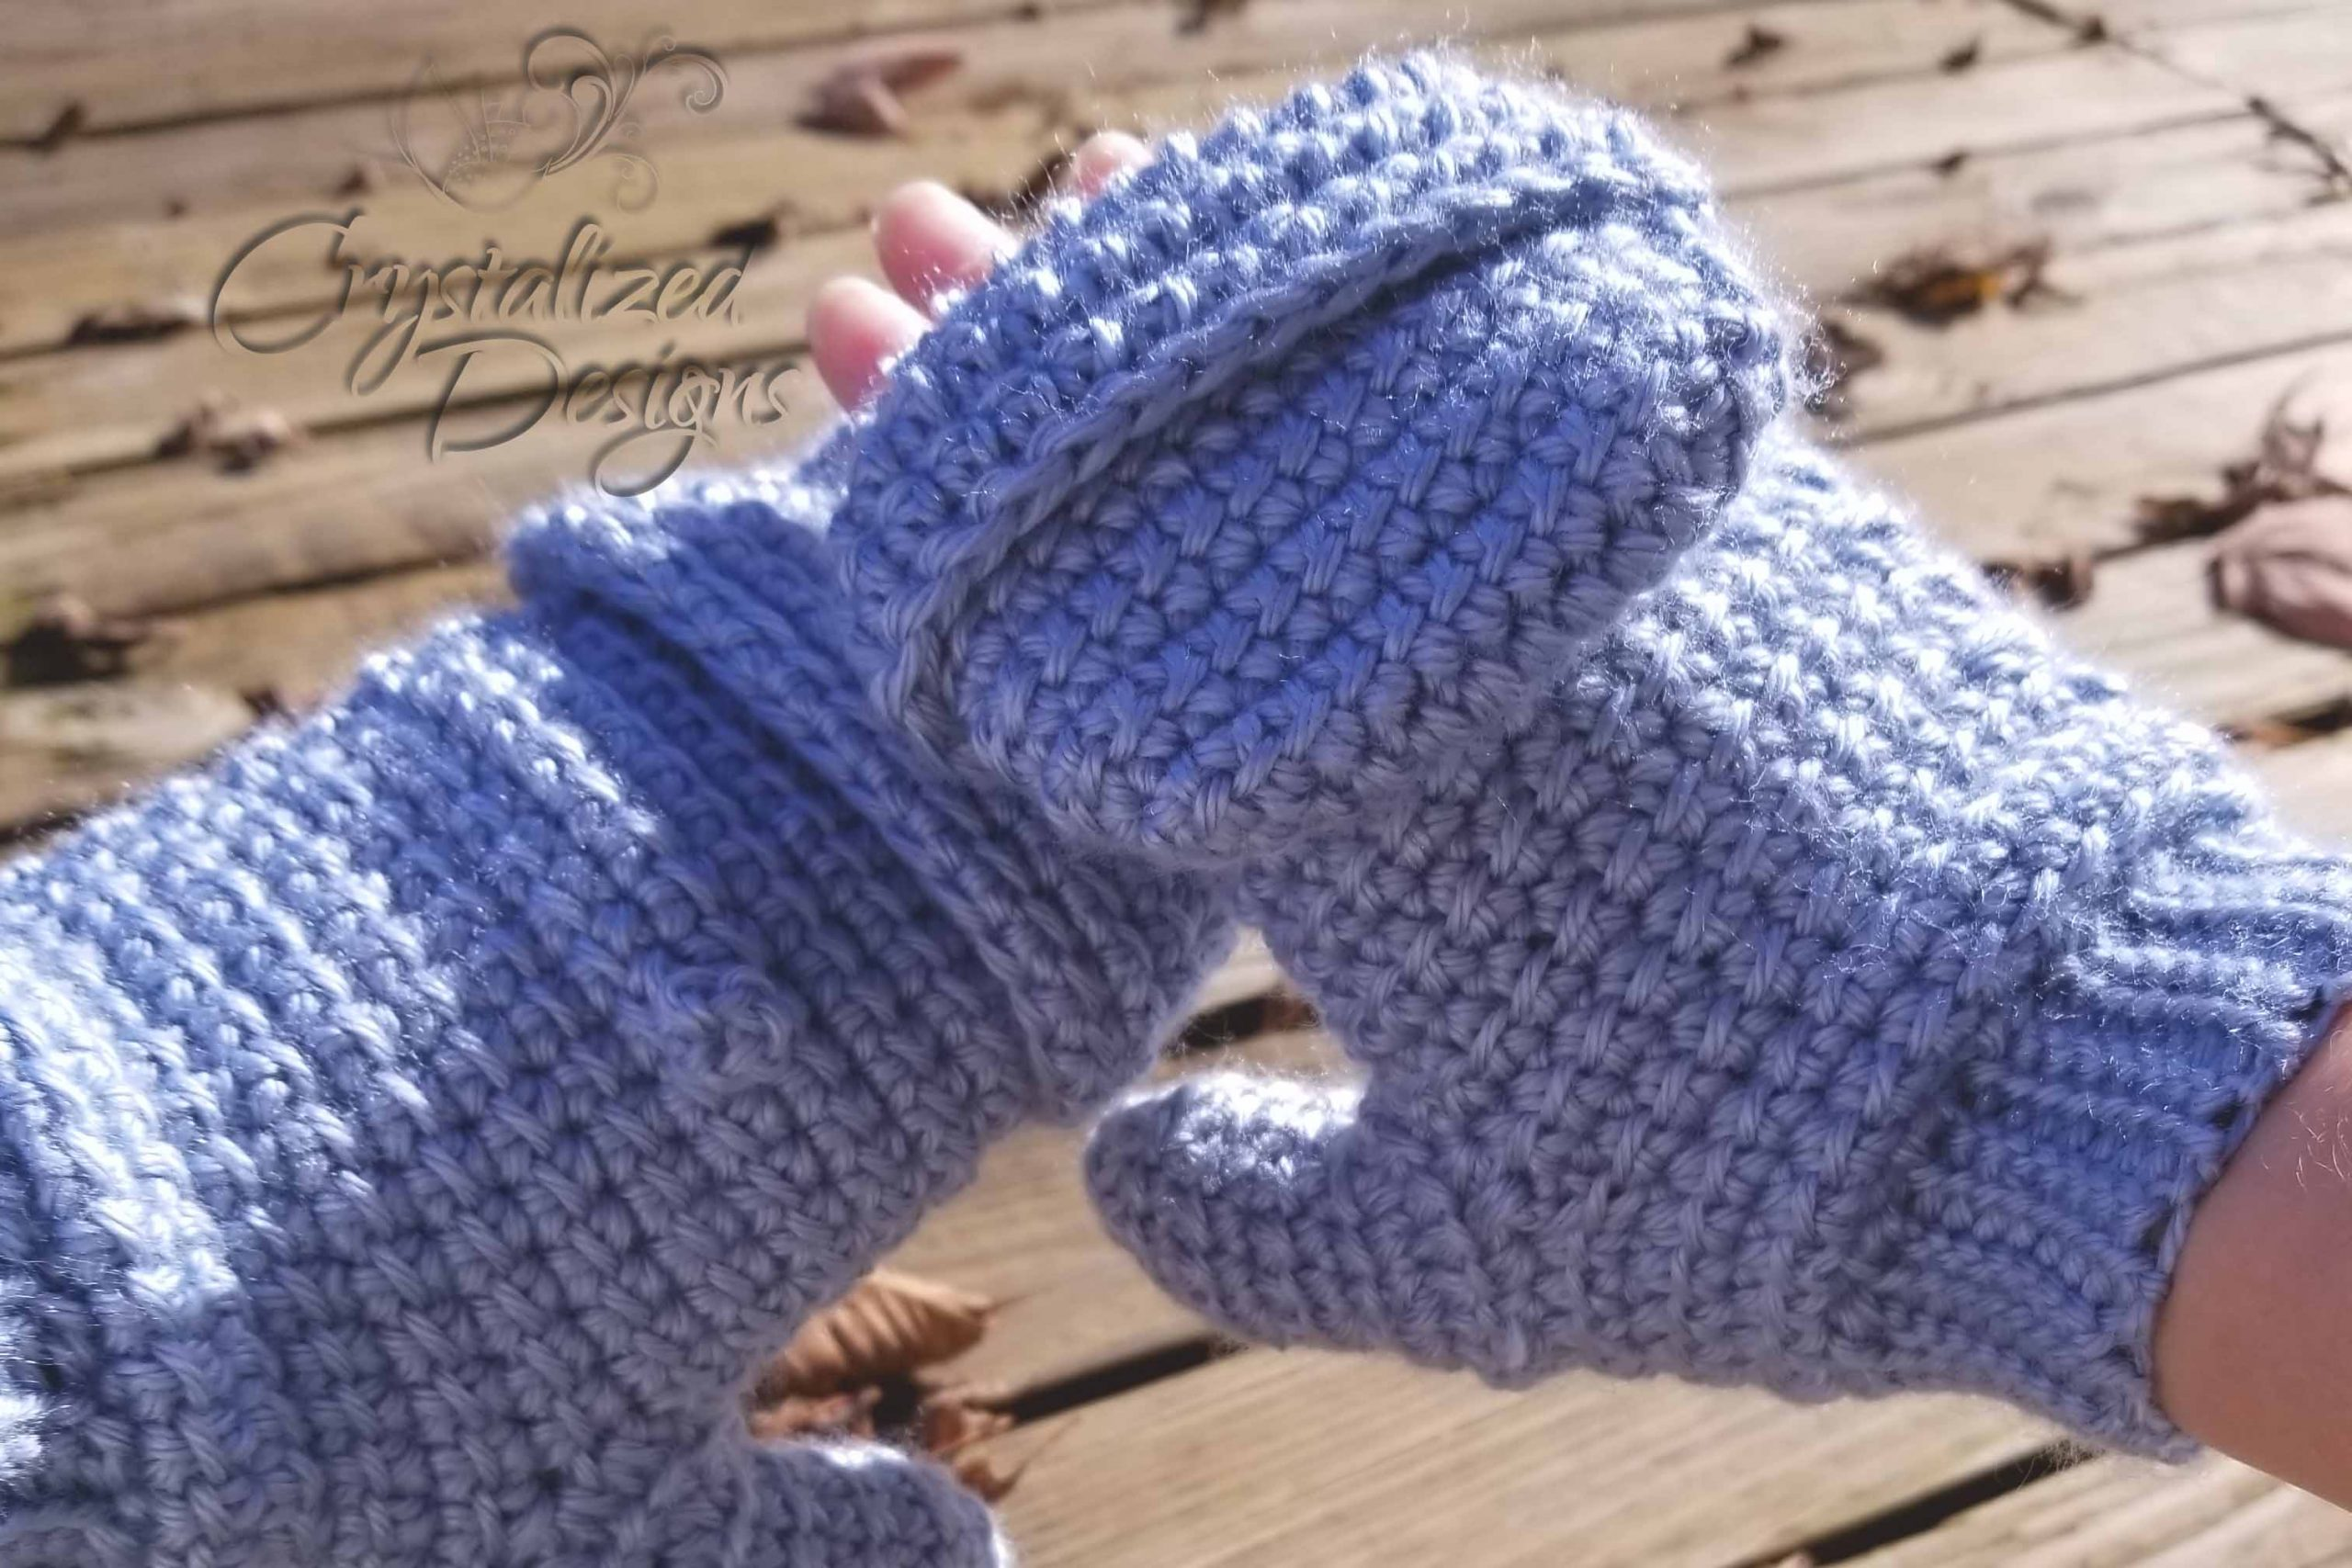 Linked Flop Top Mittens Free Crochet Pattern by Crystalized Designs